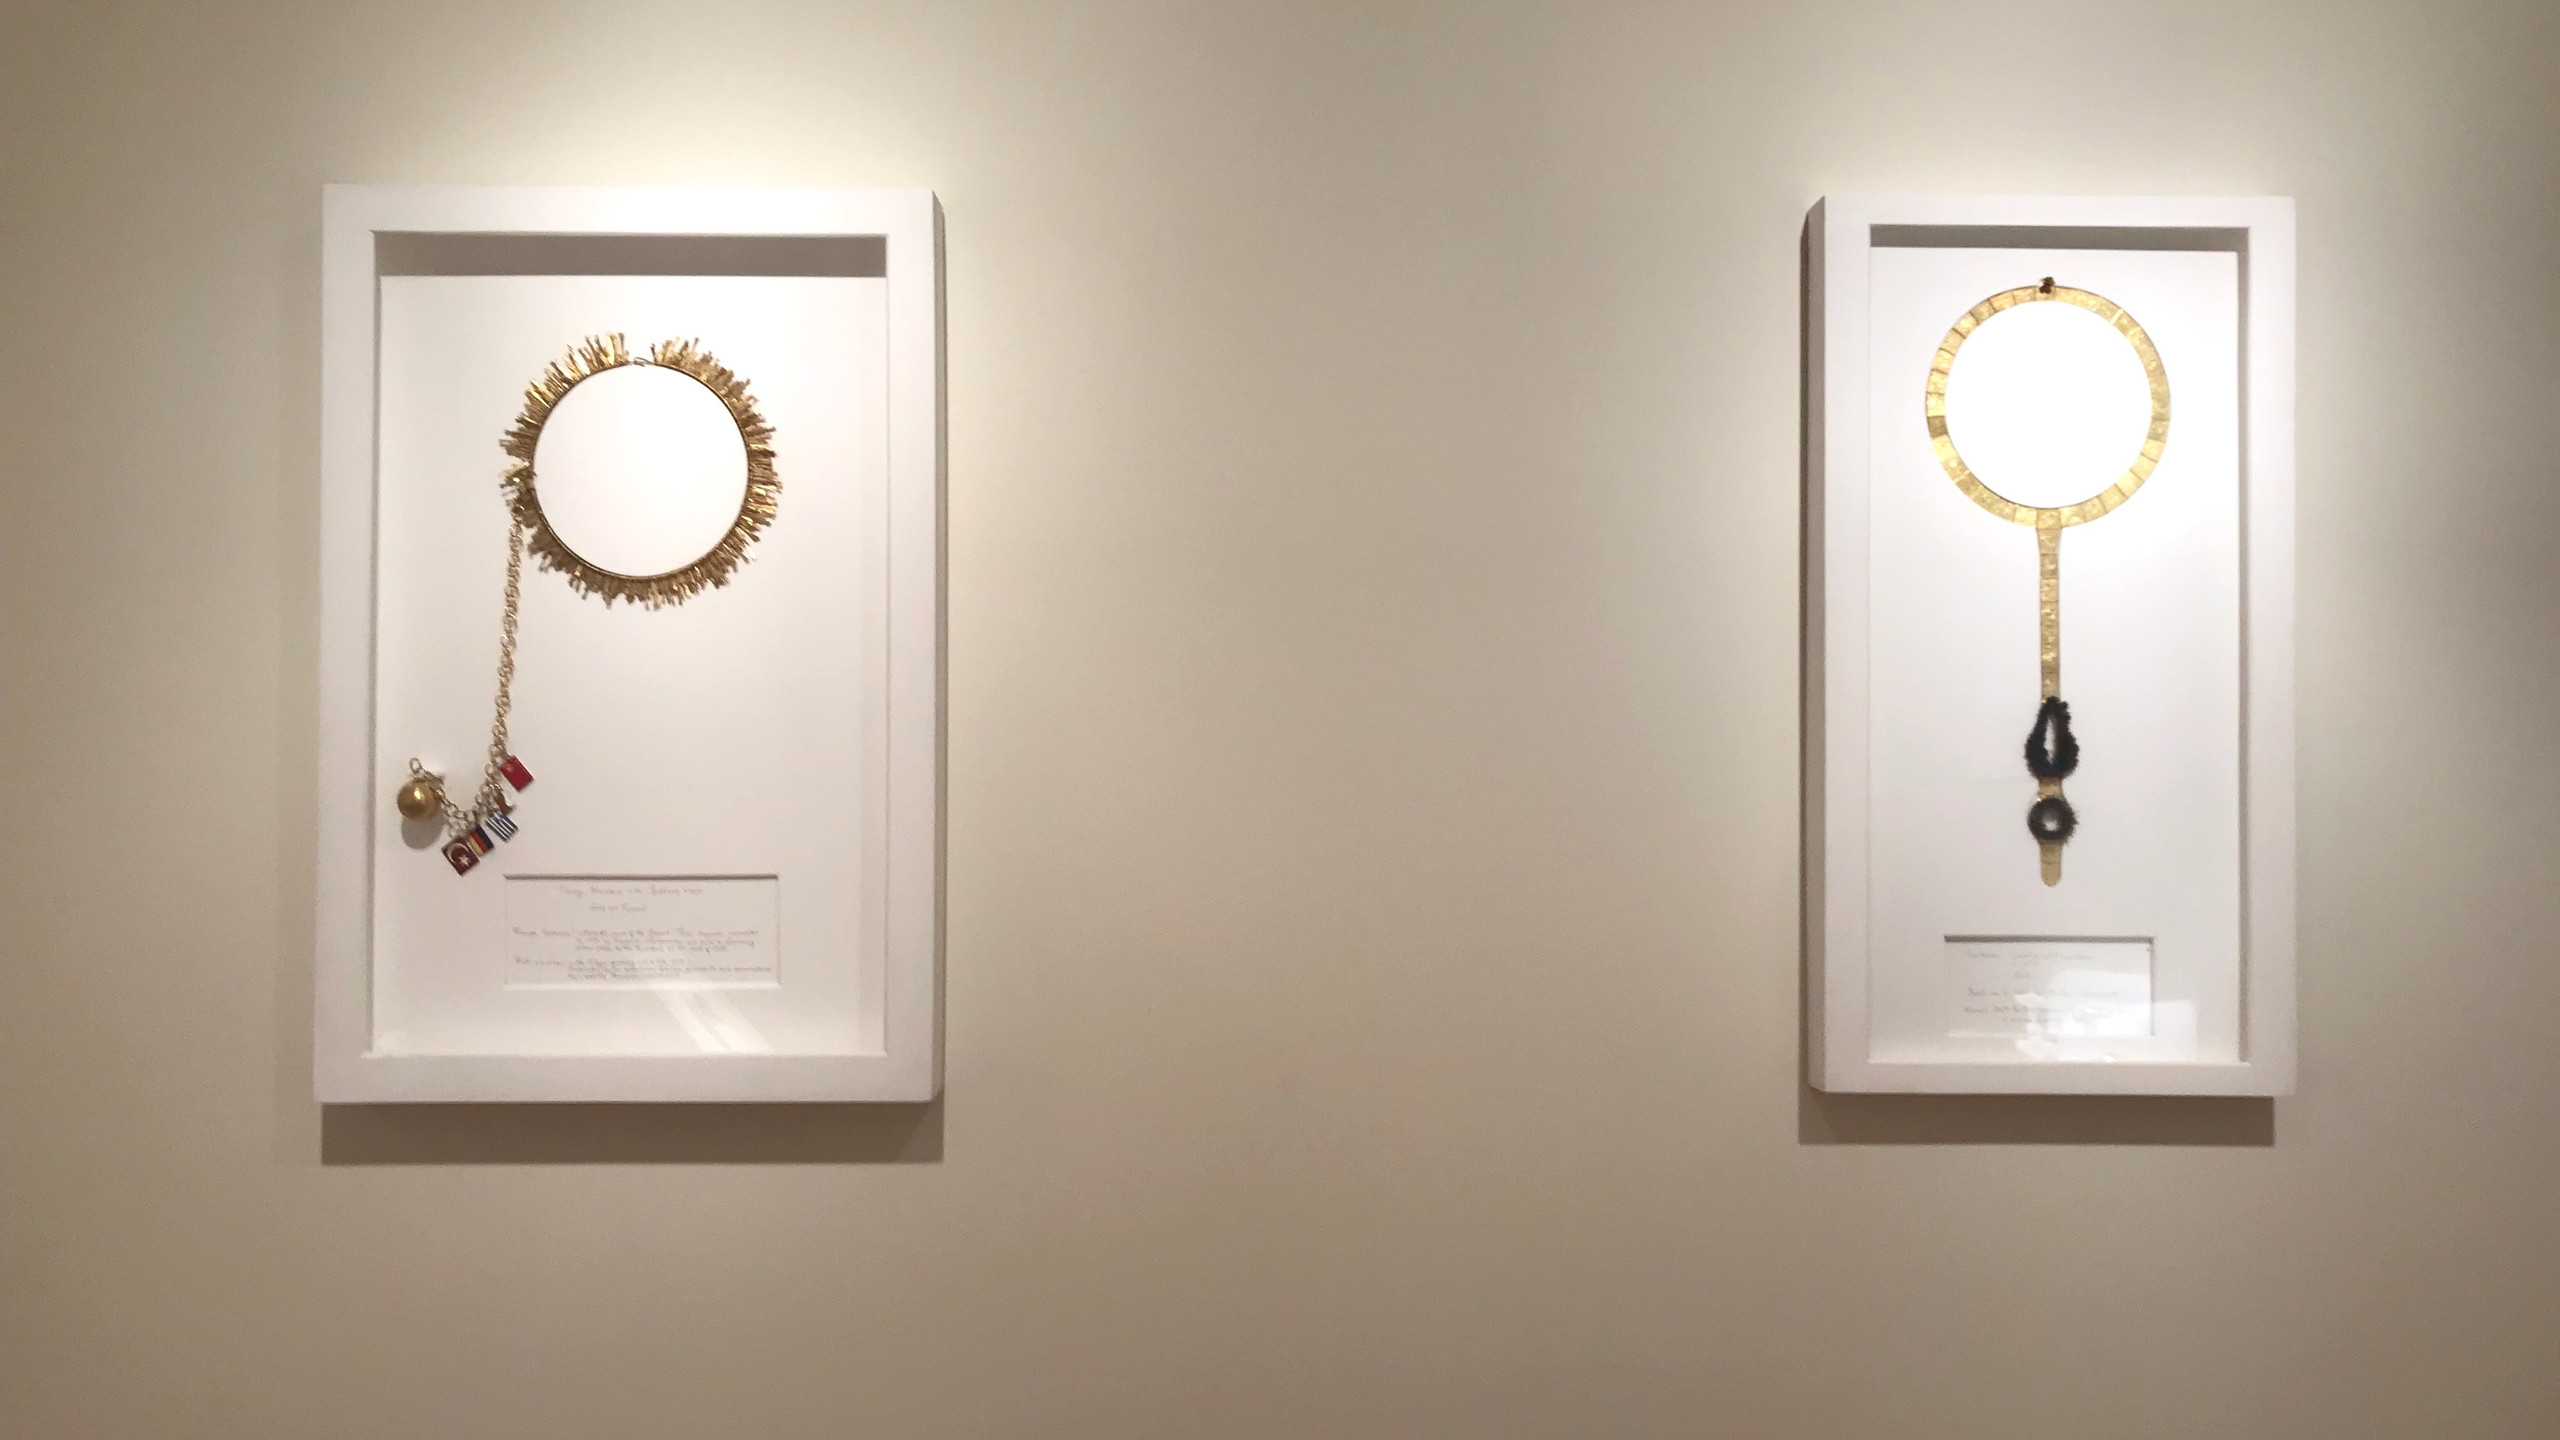 "(left): ""The Gold Standard Part III: Fringe Necklace with Ball and Chain."" Recycled gold, enamel, acrylic. Image courtesy of the Metal Museum.  (right): ""The Gold Standard Part III: Victorian Chastity Belt Necklace."" Recycled gold, hair. Image courtesy of the Metal Museum."